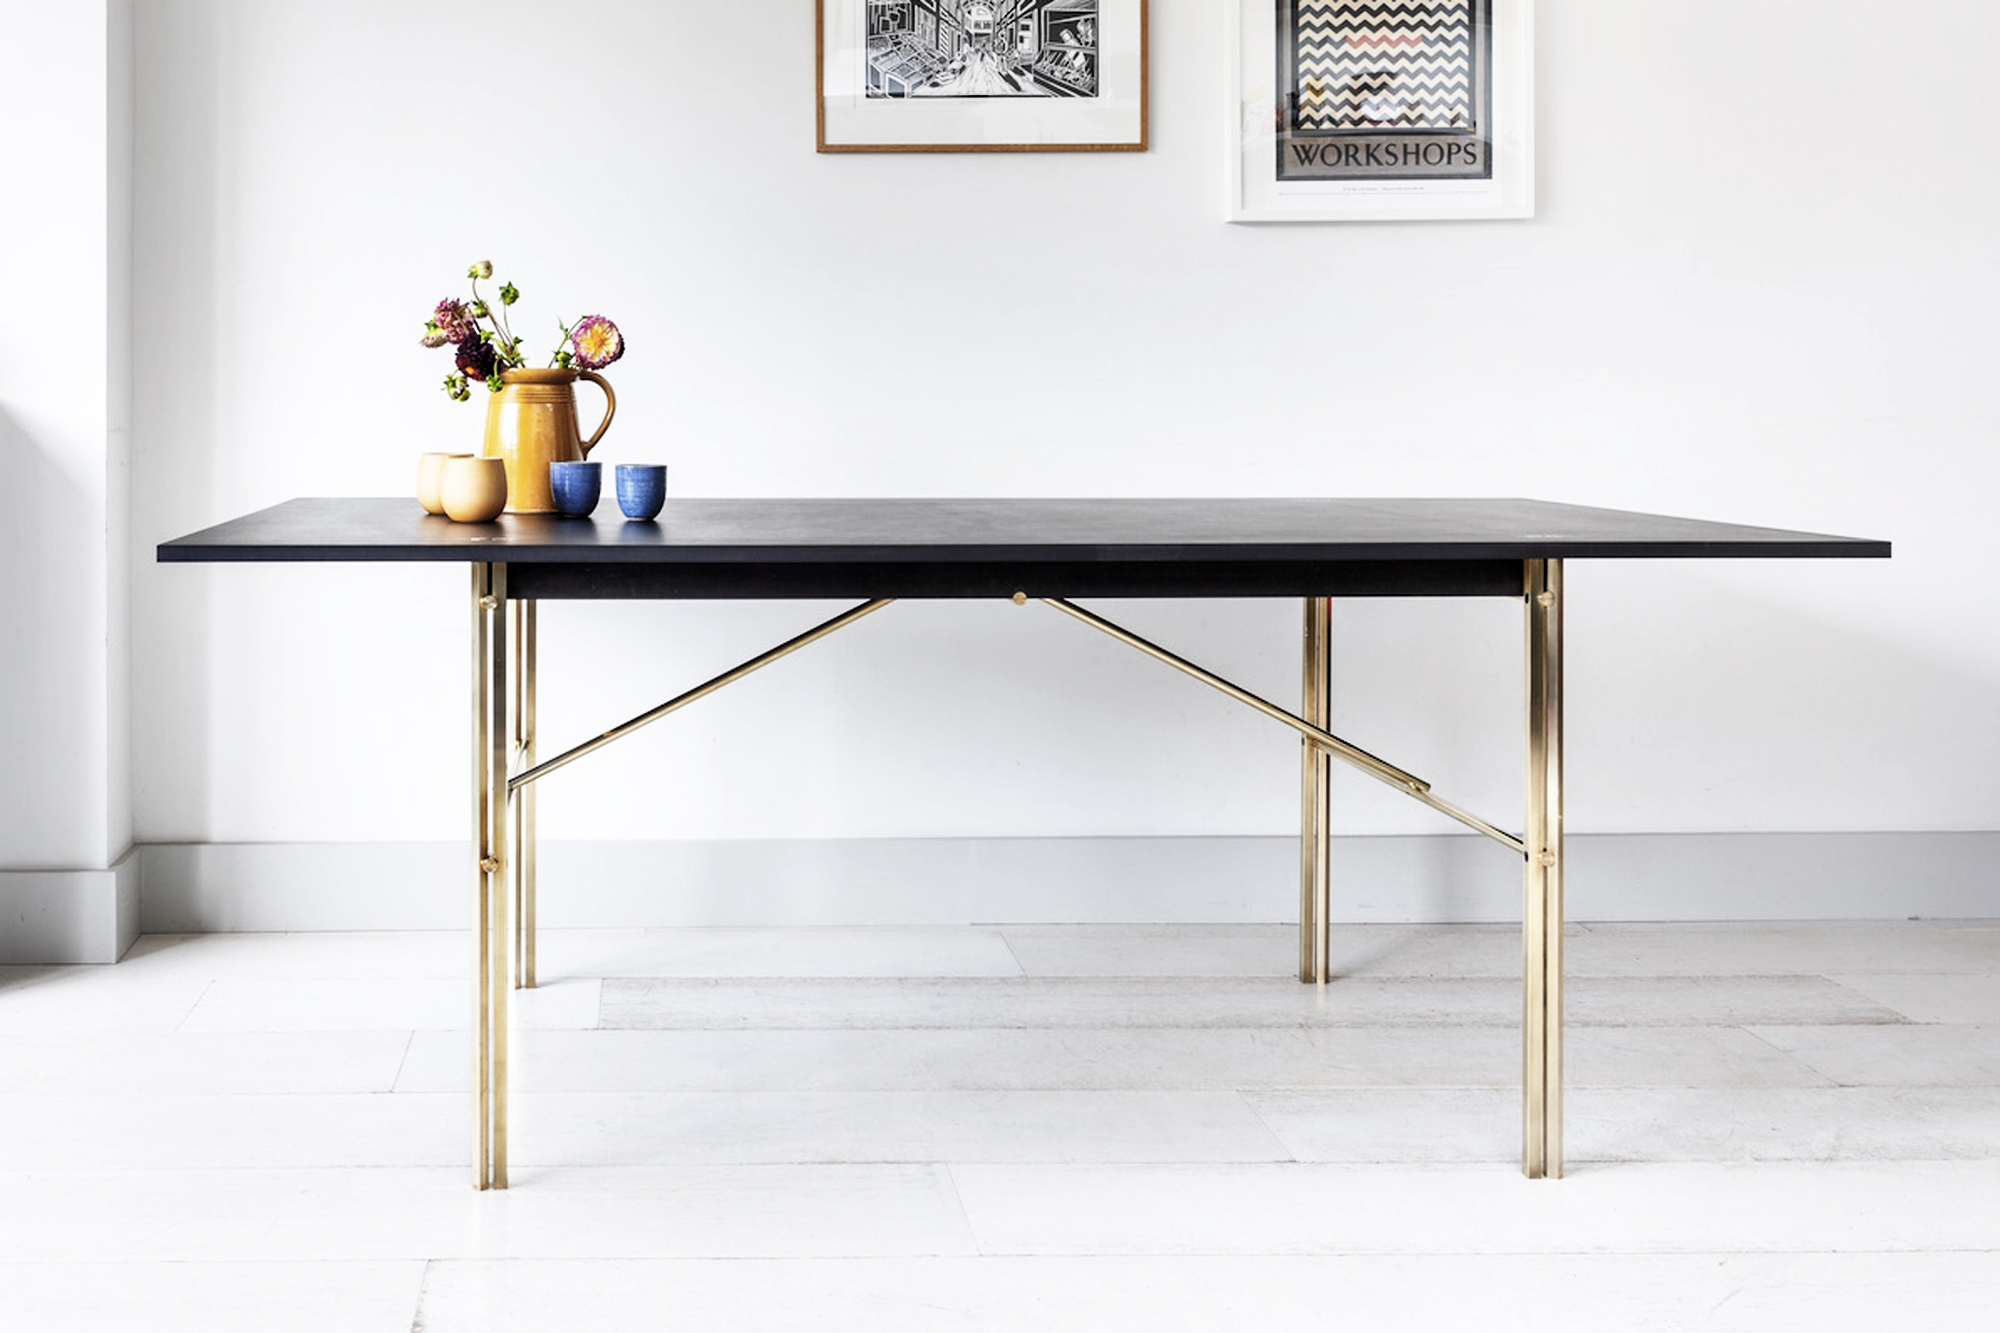 Prime Square Peg Table And Bench Studio In Place Gmtry Best Dining Table And Chair Ideas Images Gmtryco